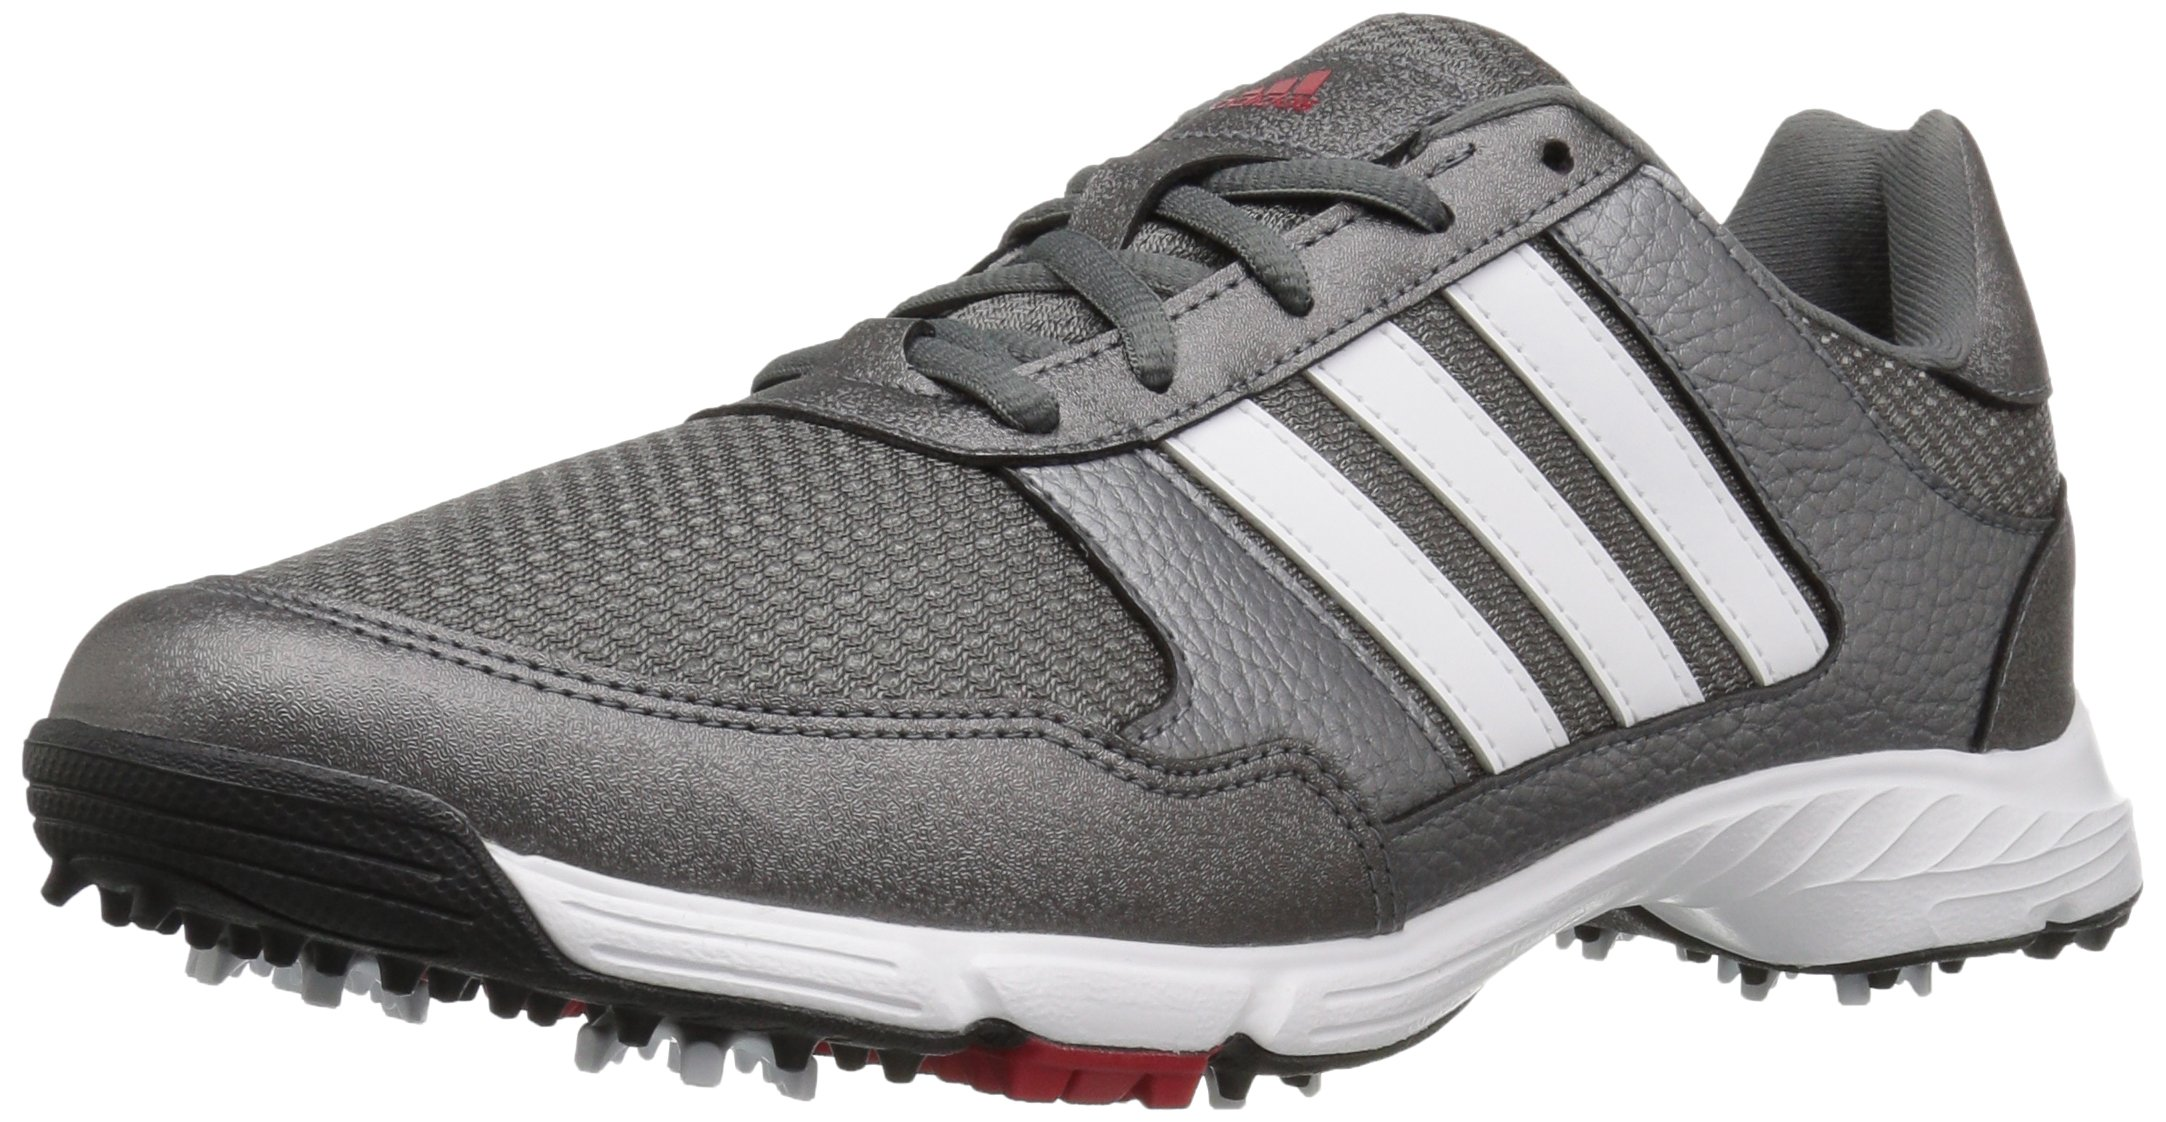 adidas Men's Tech Response Golf Shoe, Iron Metallic/White, 8.5 W US